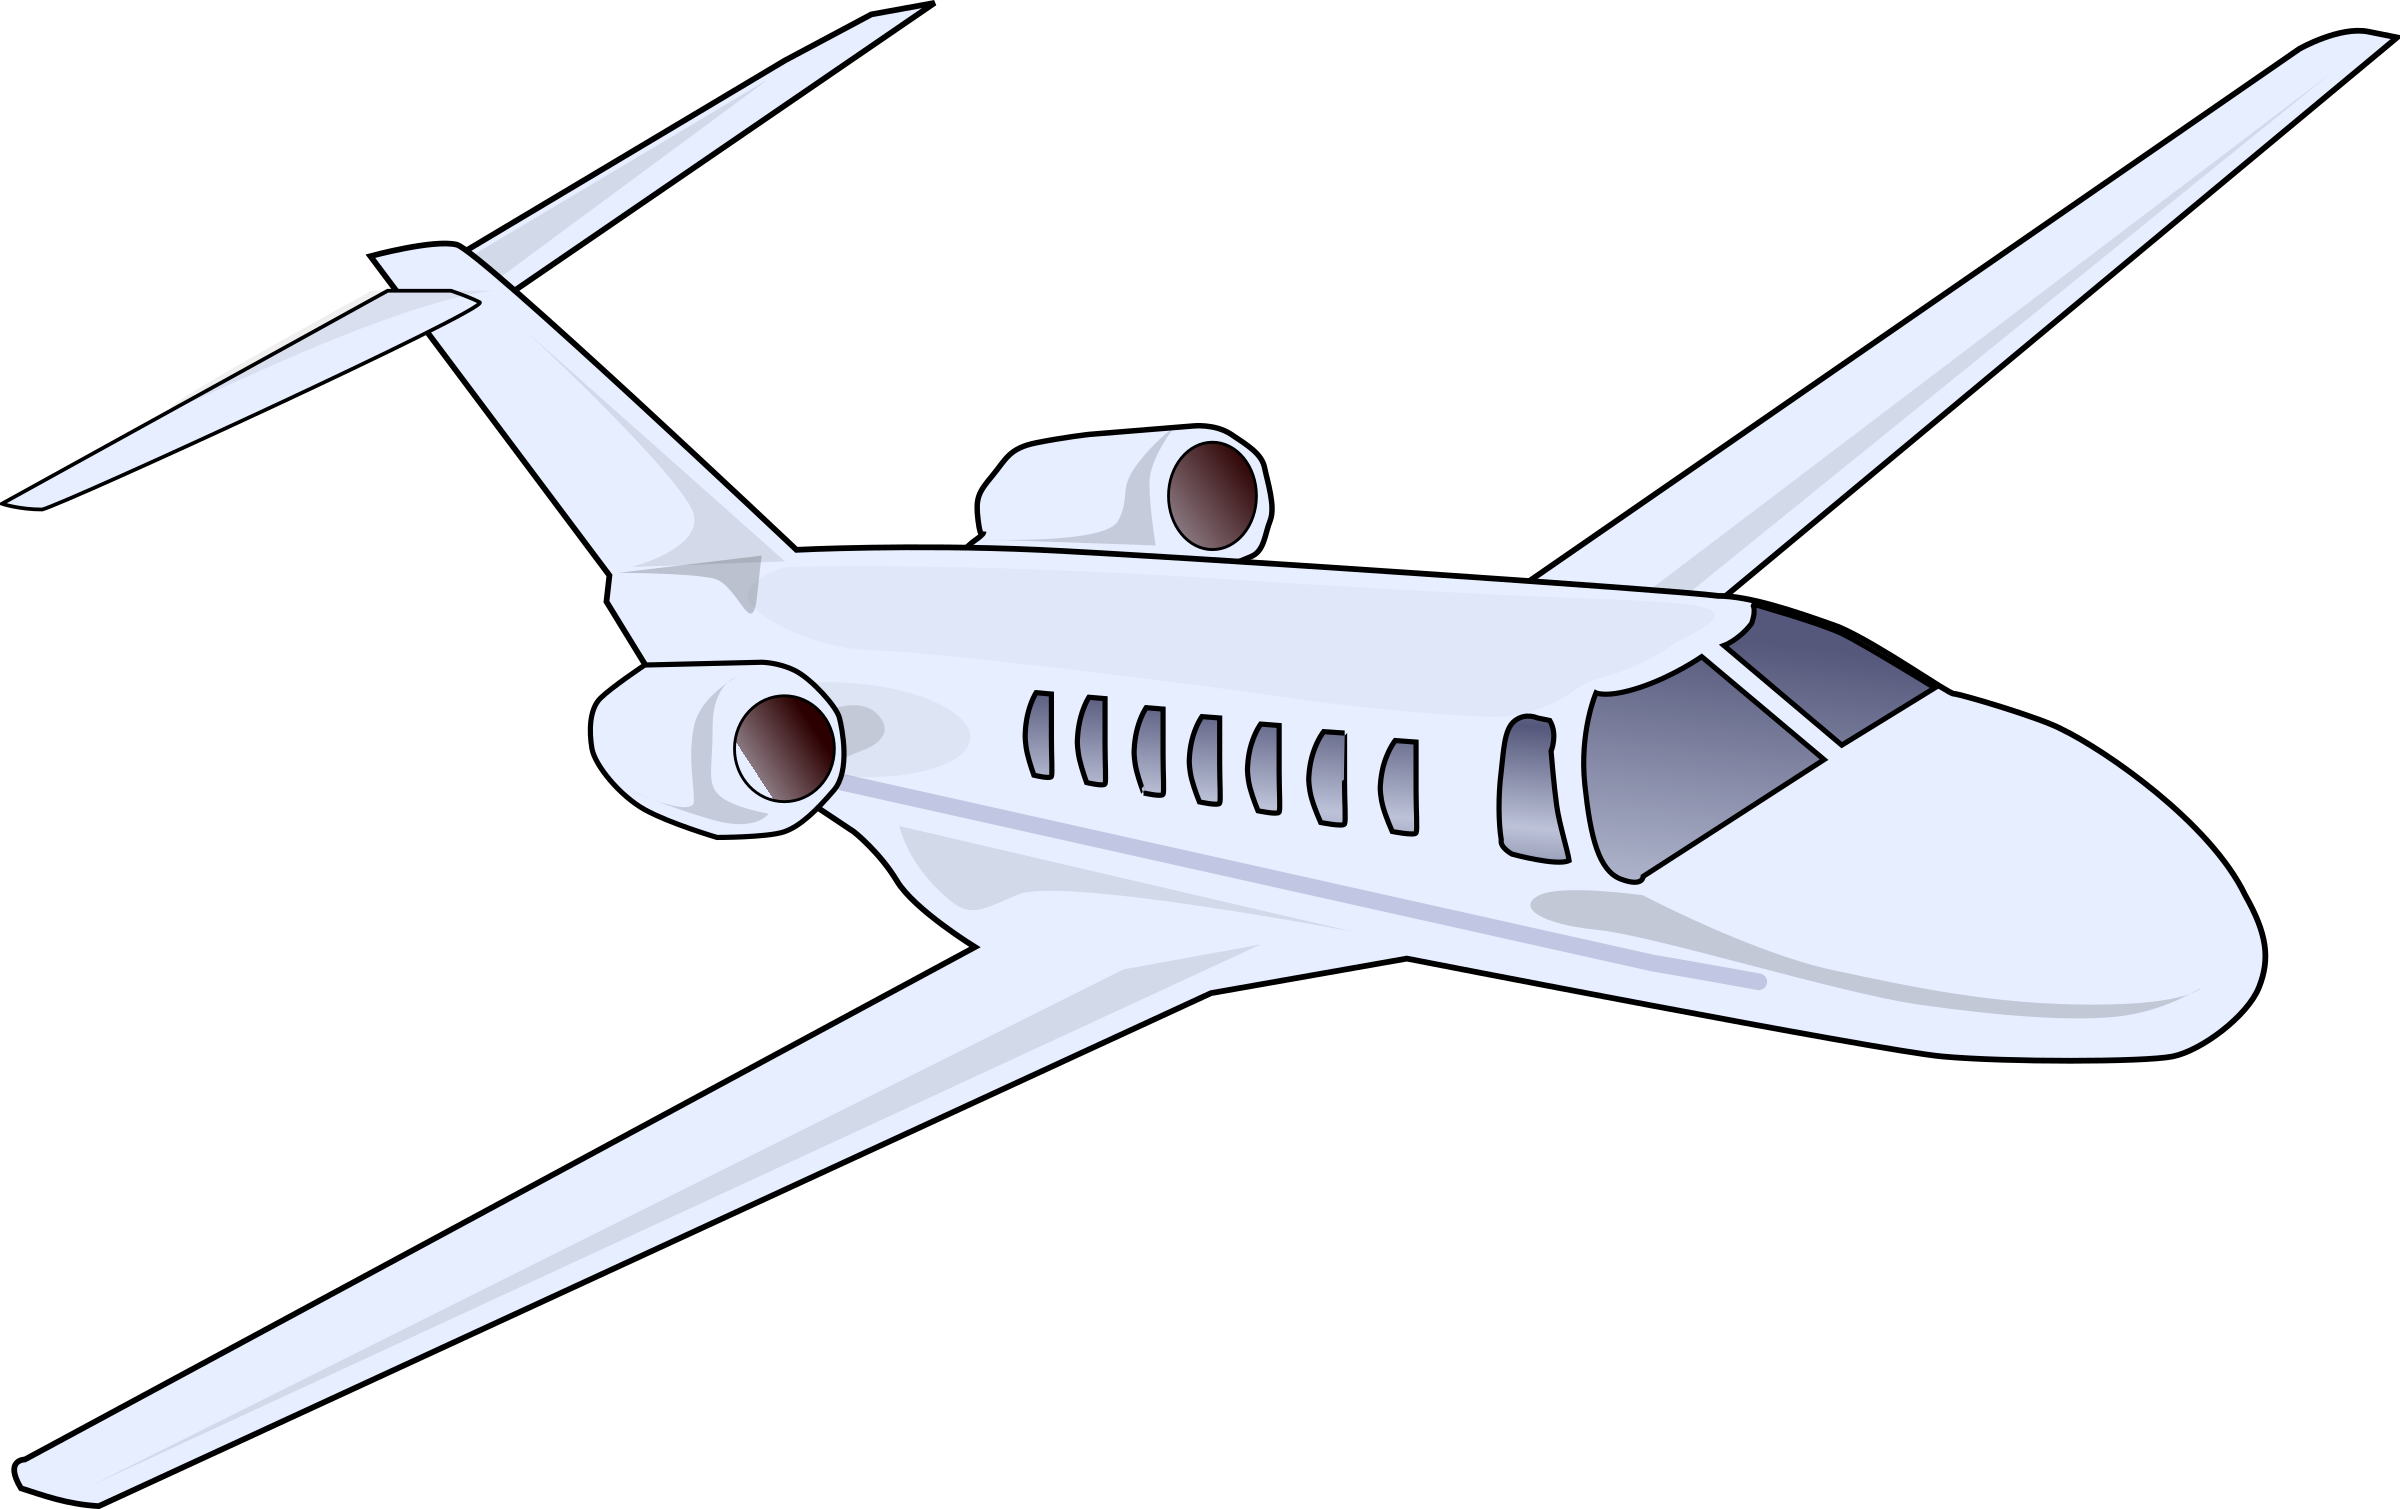 Business jet by Jarno